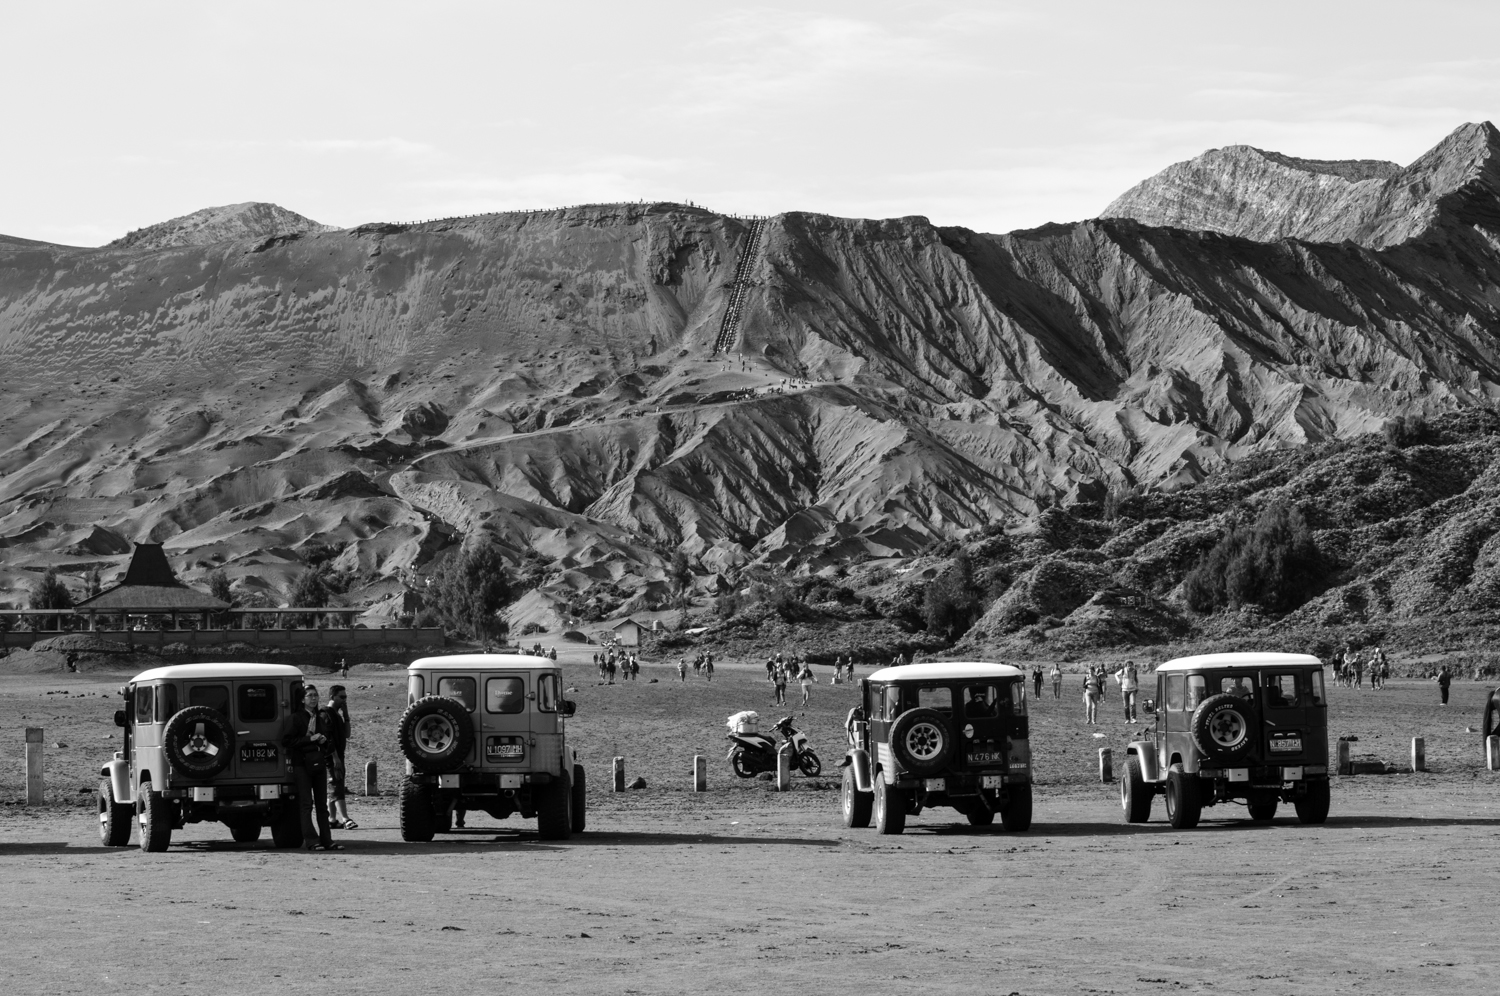 """""""You walk from here."""" Mount Bromo, Indonesia. December 2012"""